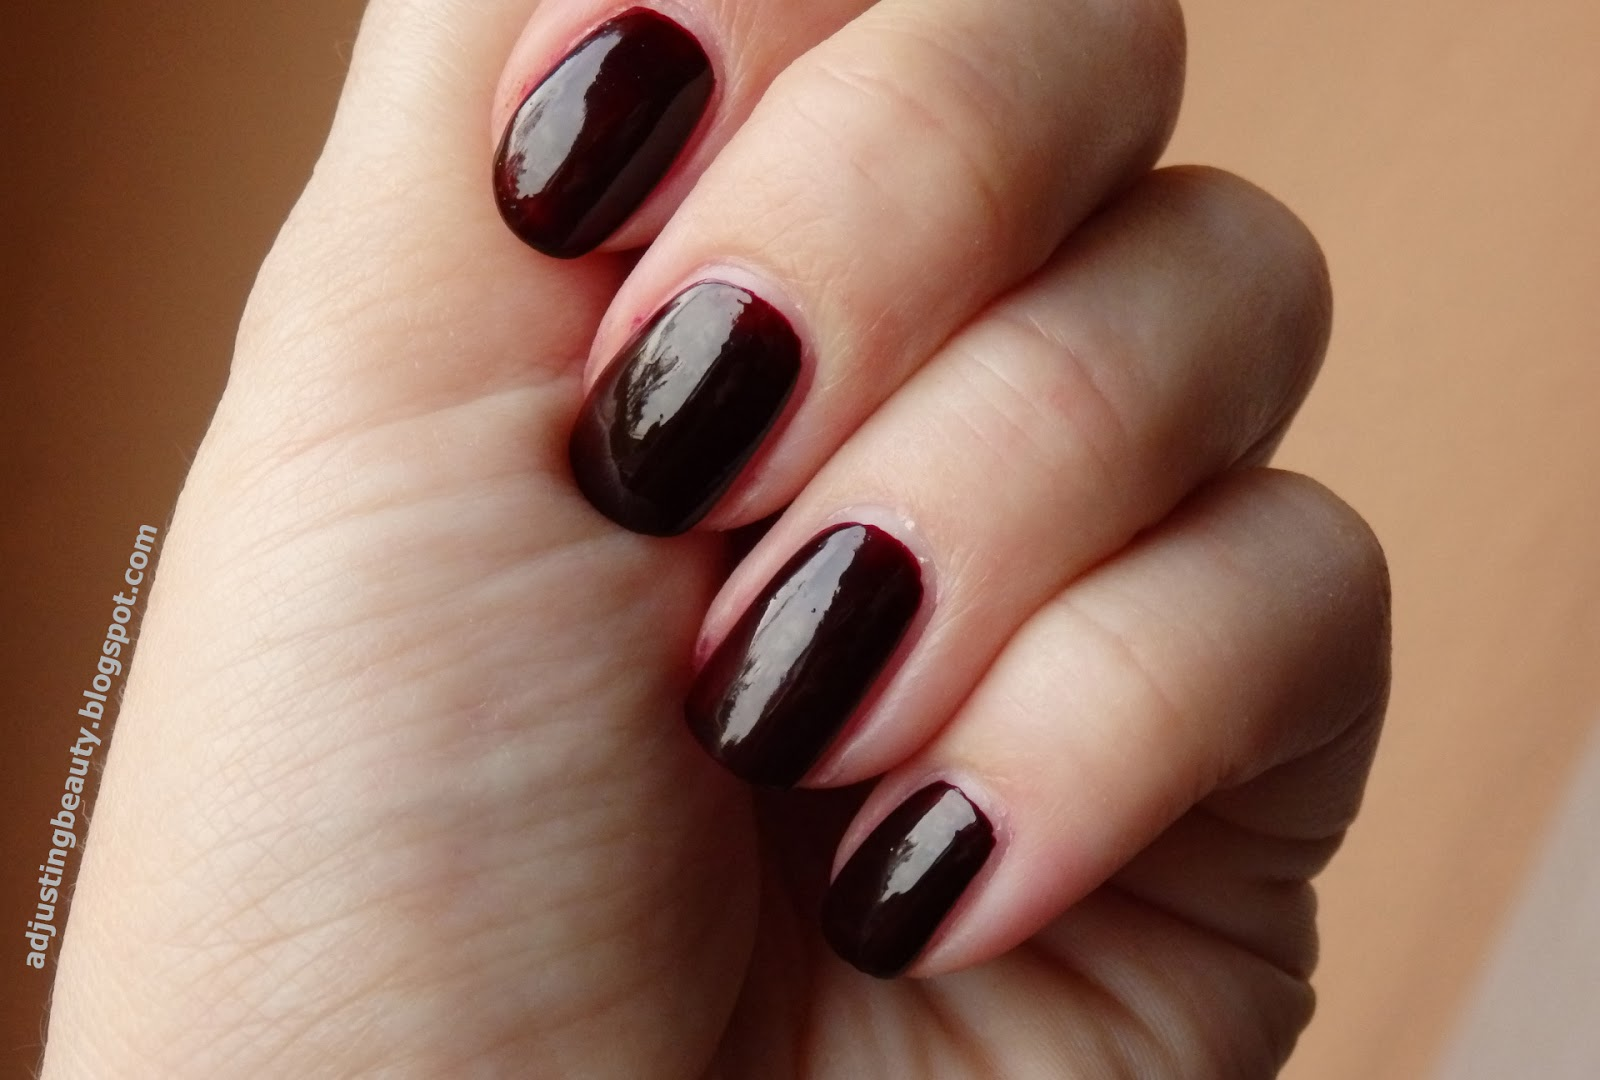 Review: Maybelline Colorama nail polish in 261 - Adjusting Beauty